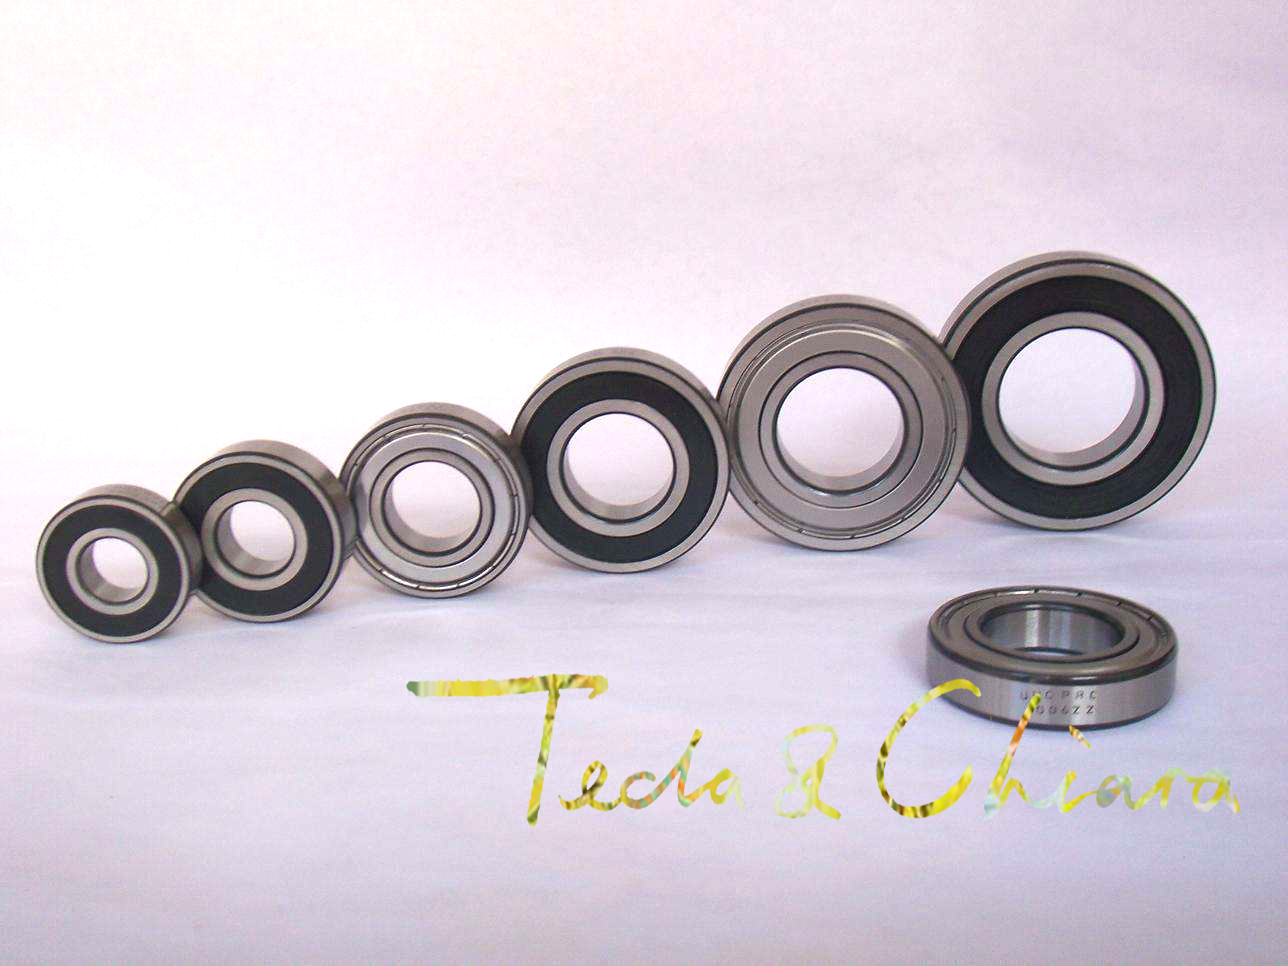 688 688ZZ 688RS 688-2Z 688Z 688-2RS ZZ RS RZ 2RZ Deep Groove Ball Bearings 8 x 16 x 5mm High Quality f625 2z f625zz f625zz f625 zz flanged flange deep groove ball bearings 5 x 16 x 5mm for 3d printer free shipping high quality